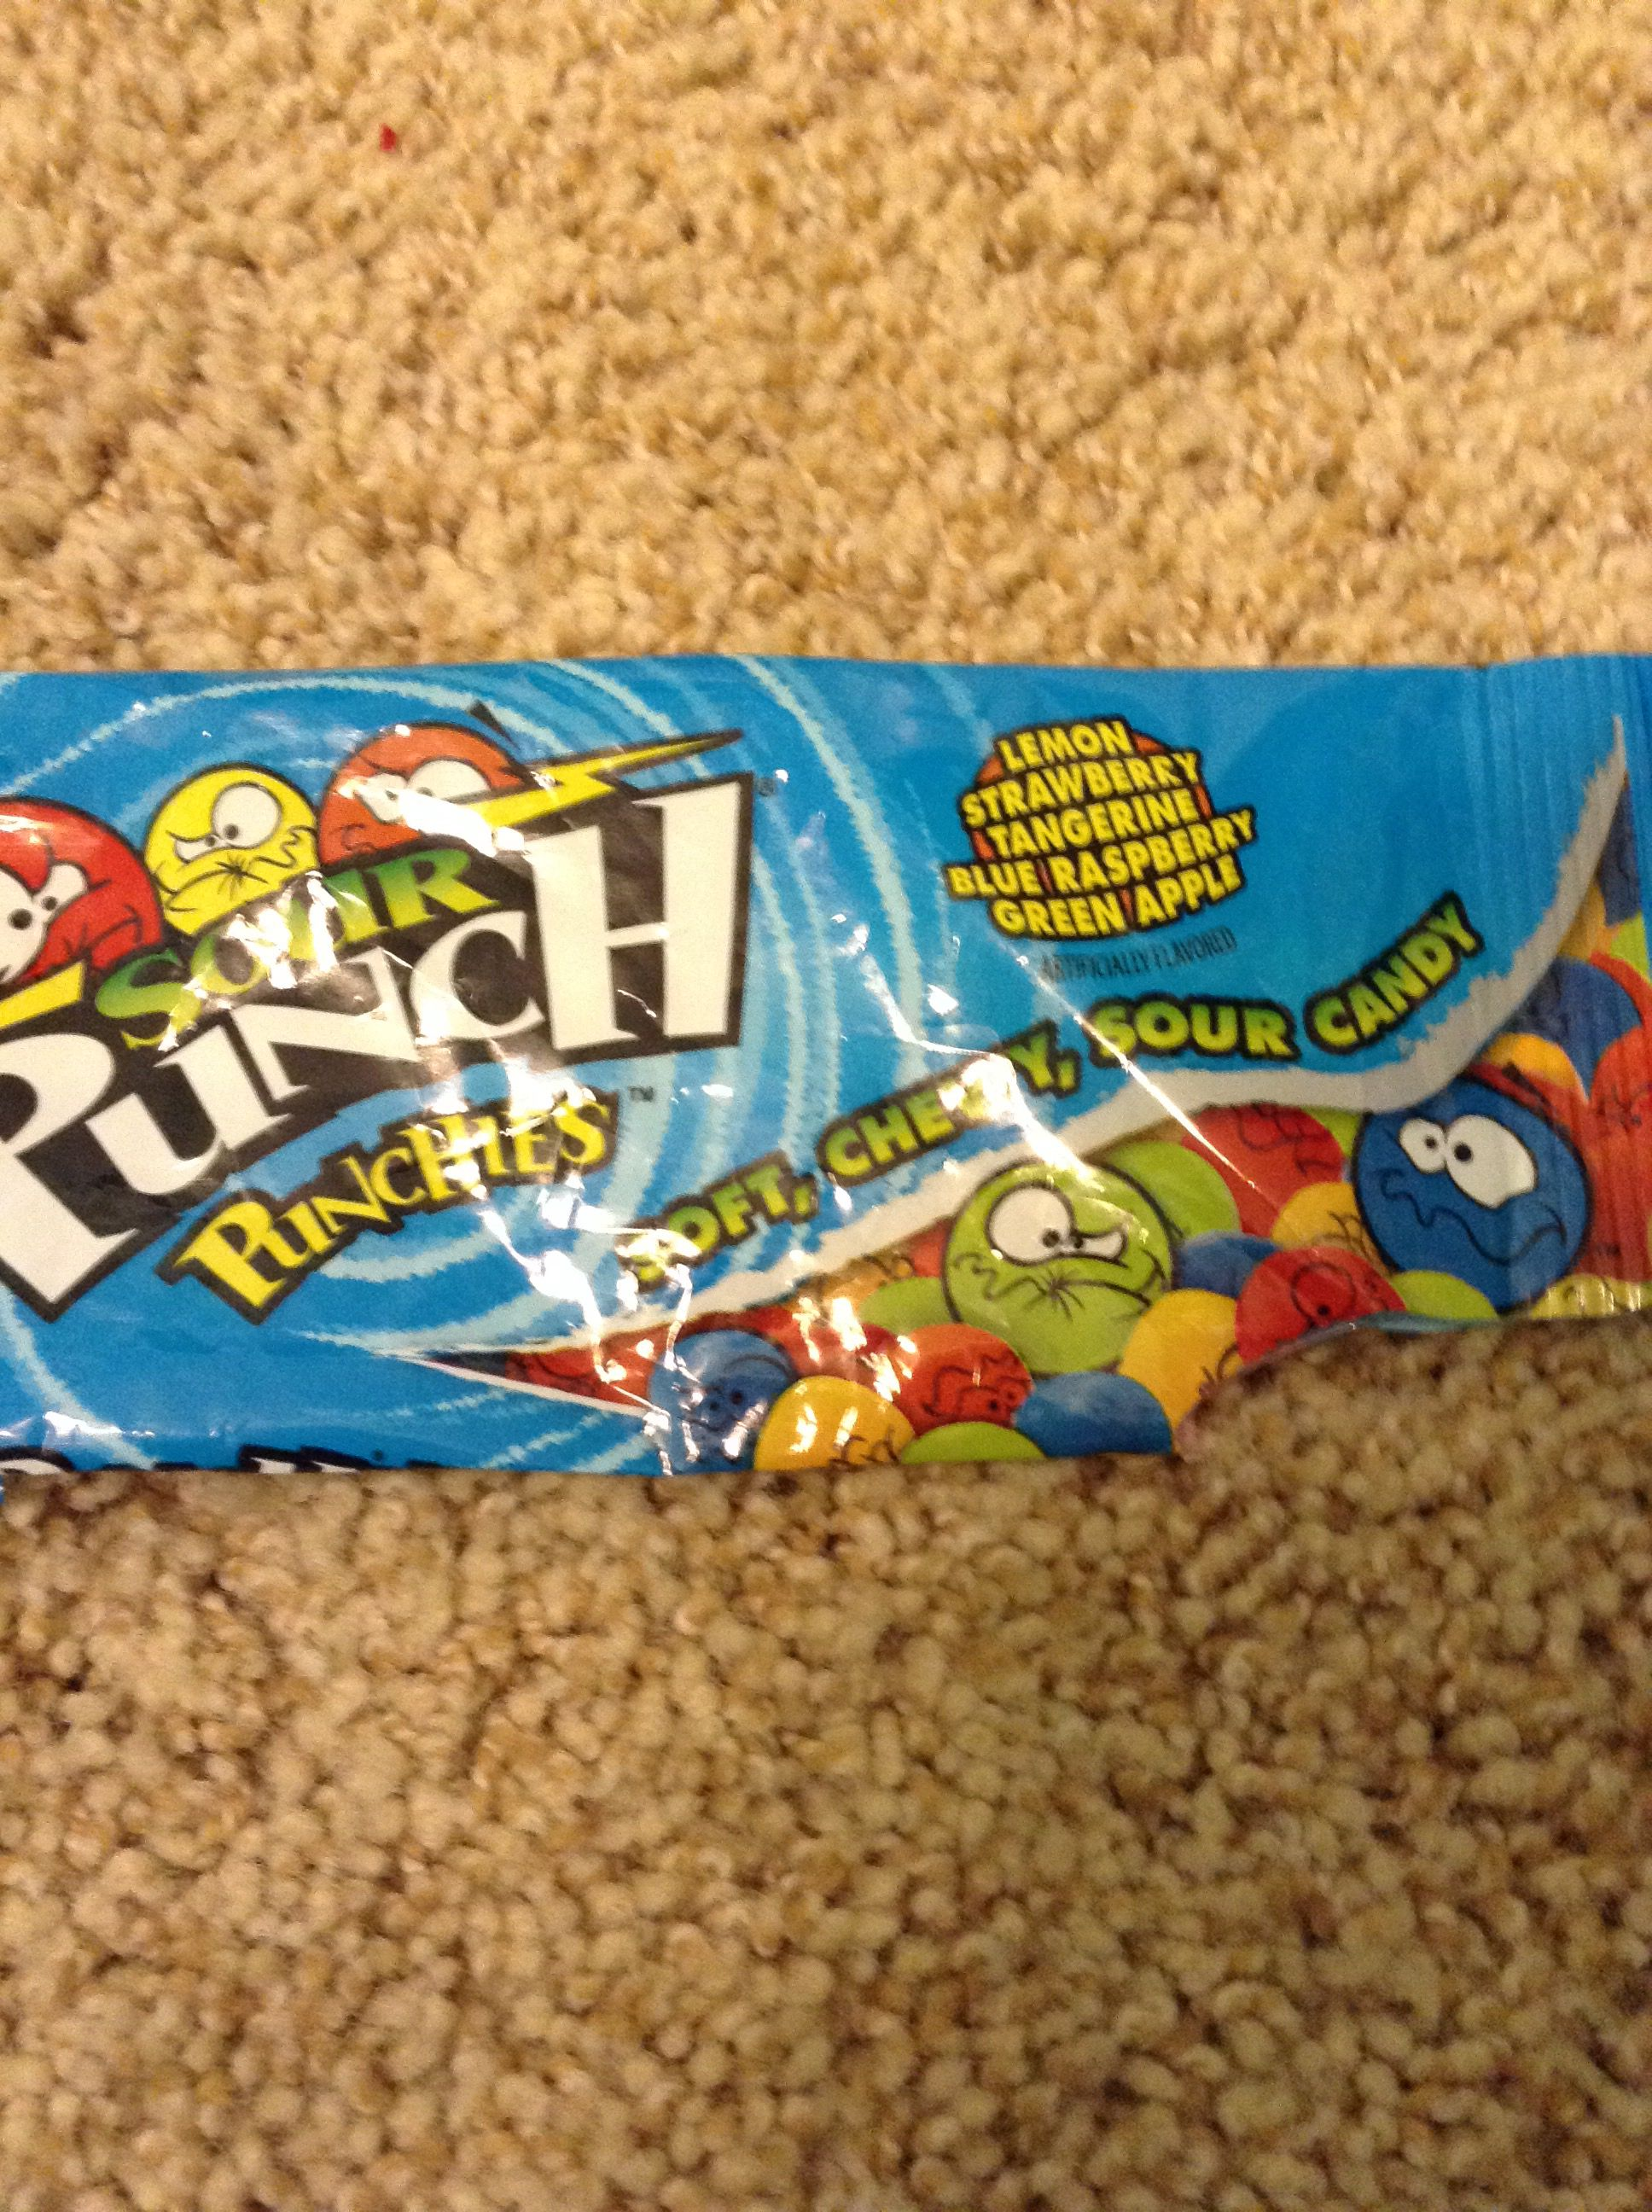 Love these candies!